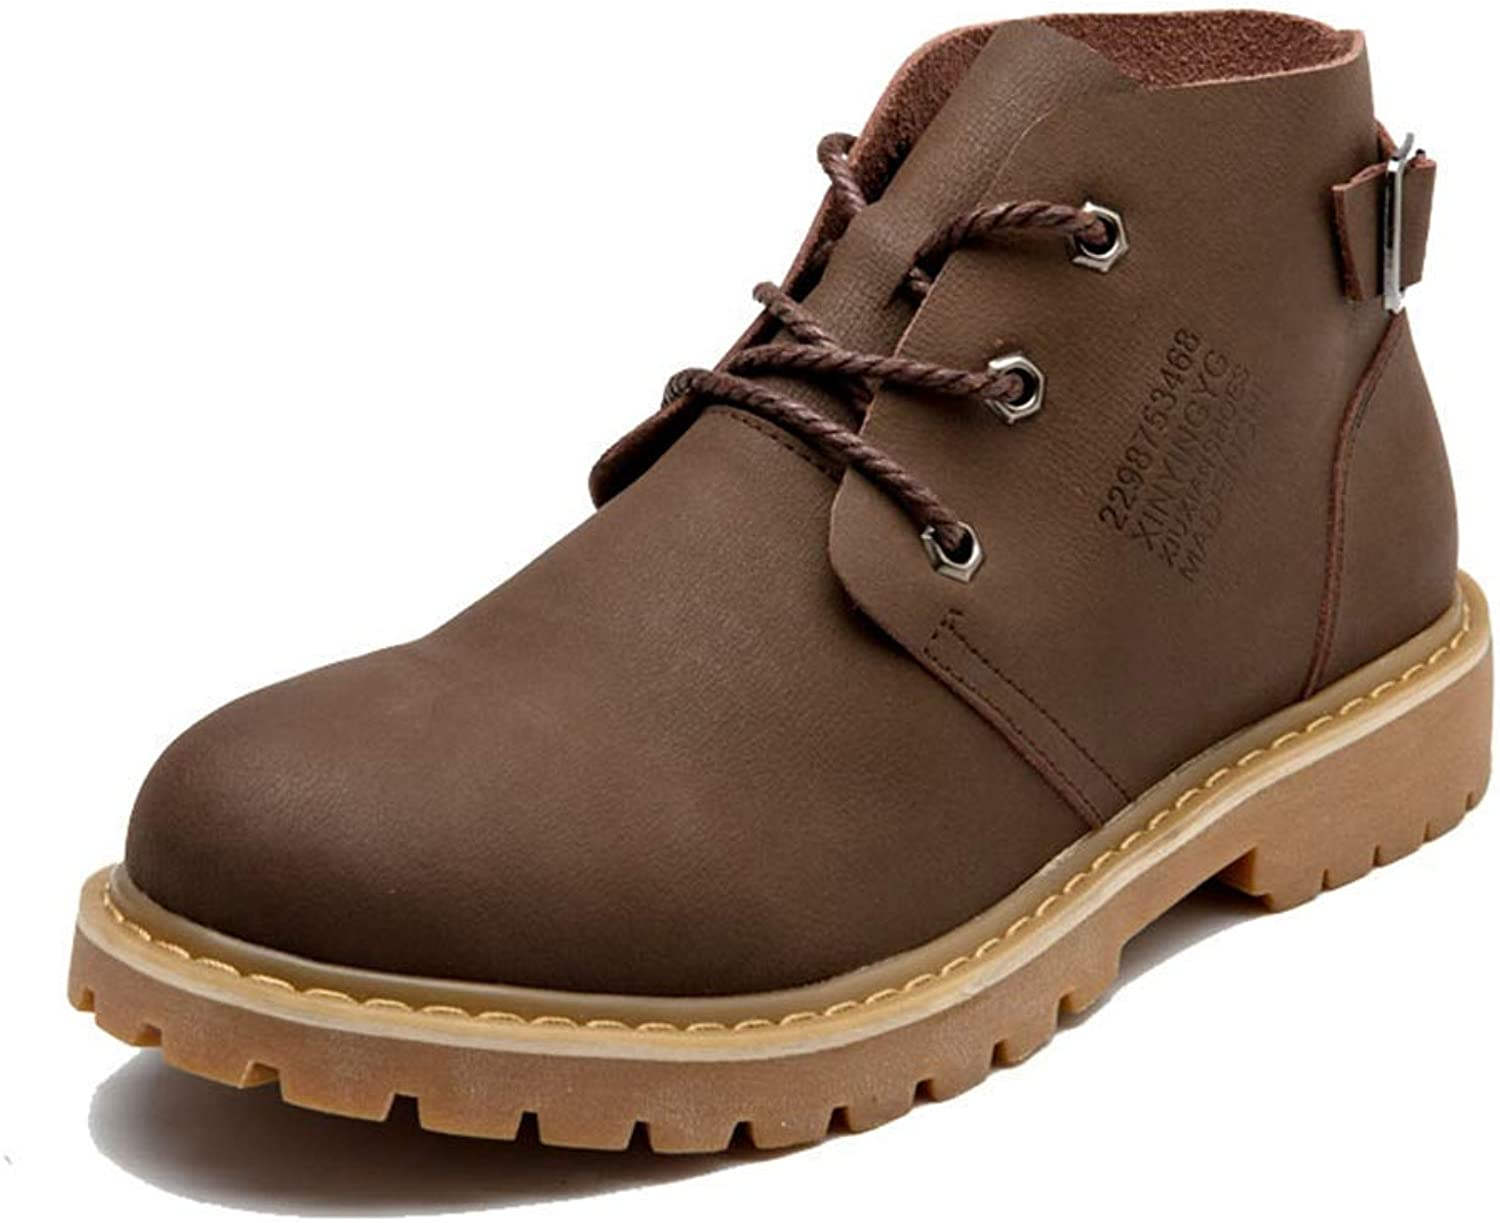 Fuxitoggo Men's ShuModish Ankle Boots, Casual Personality Antirust Metal Buckle Comfortable Sole Martin Boots (color  Brown, Size  39 EU) (color   Brown, Size   44 EU)